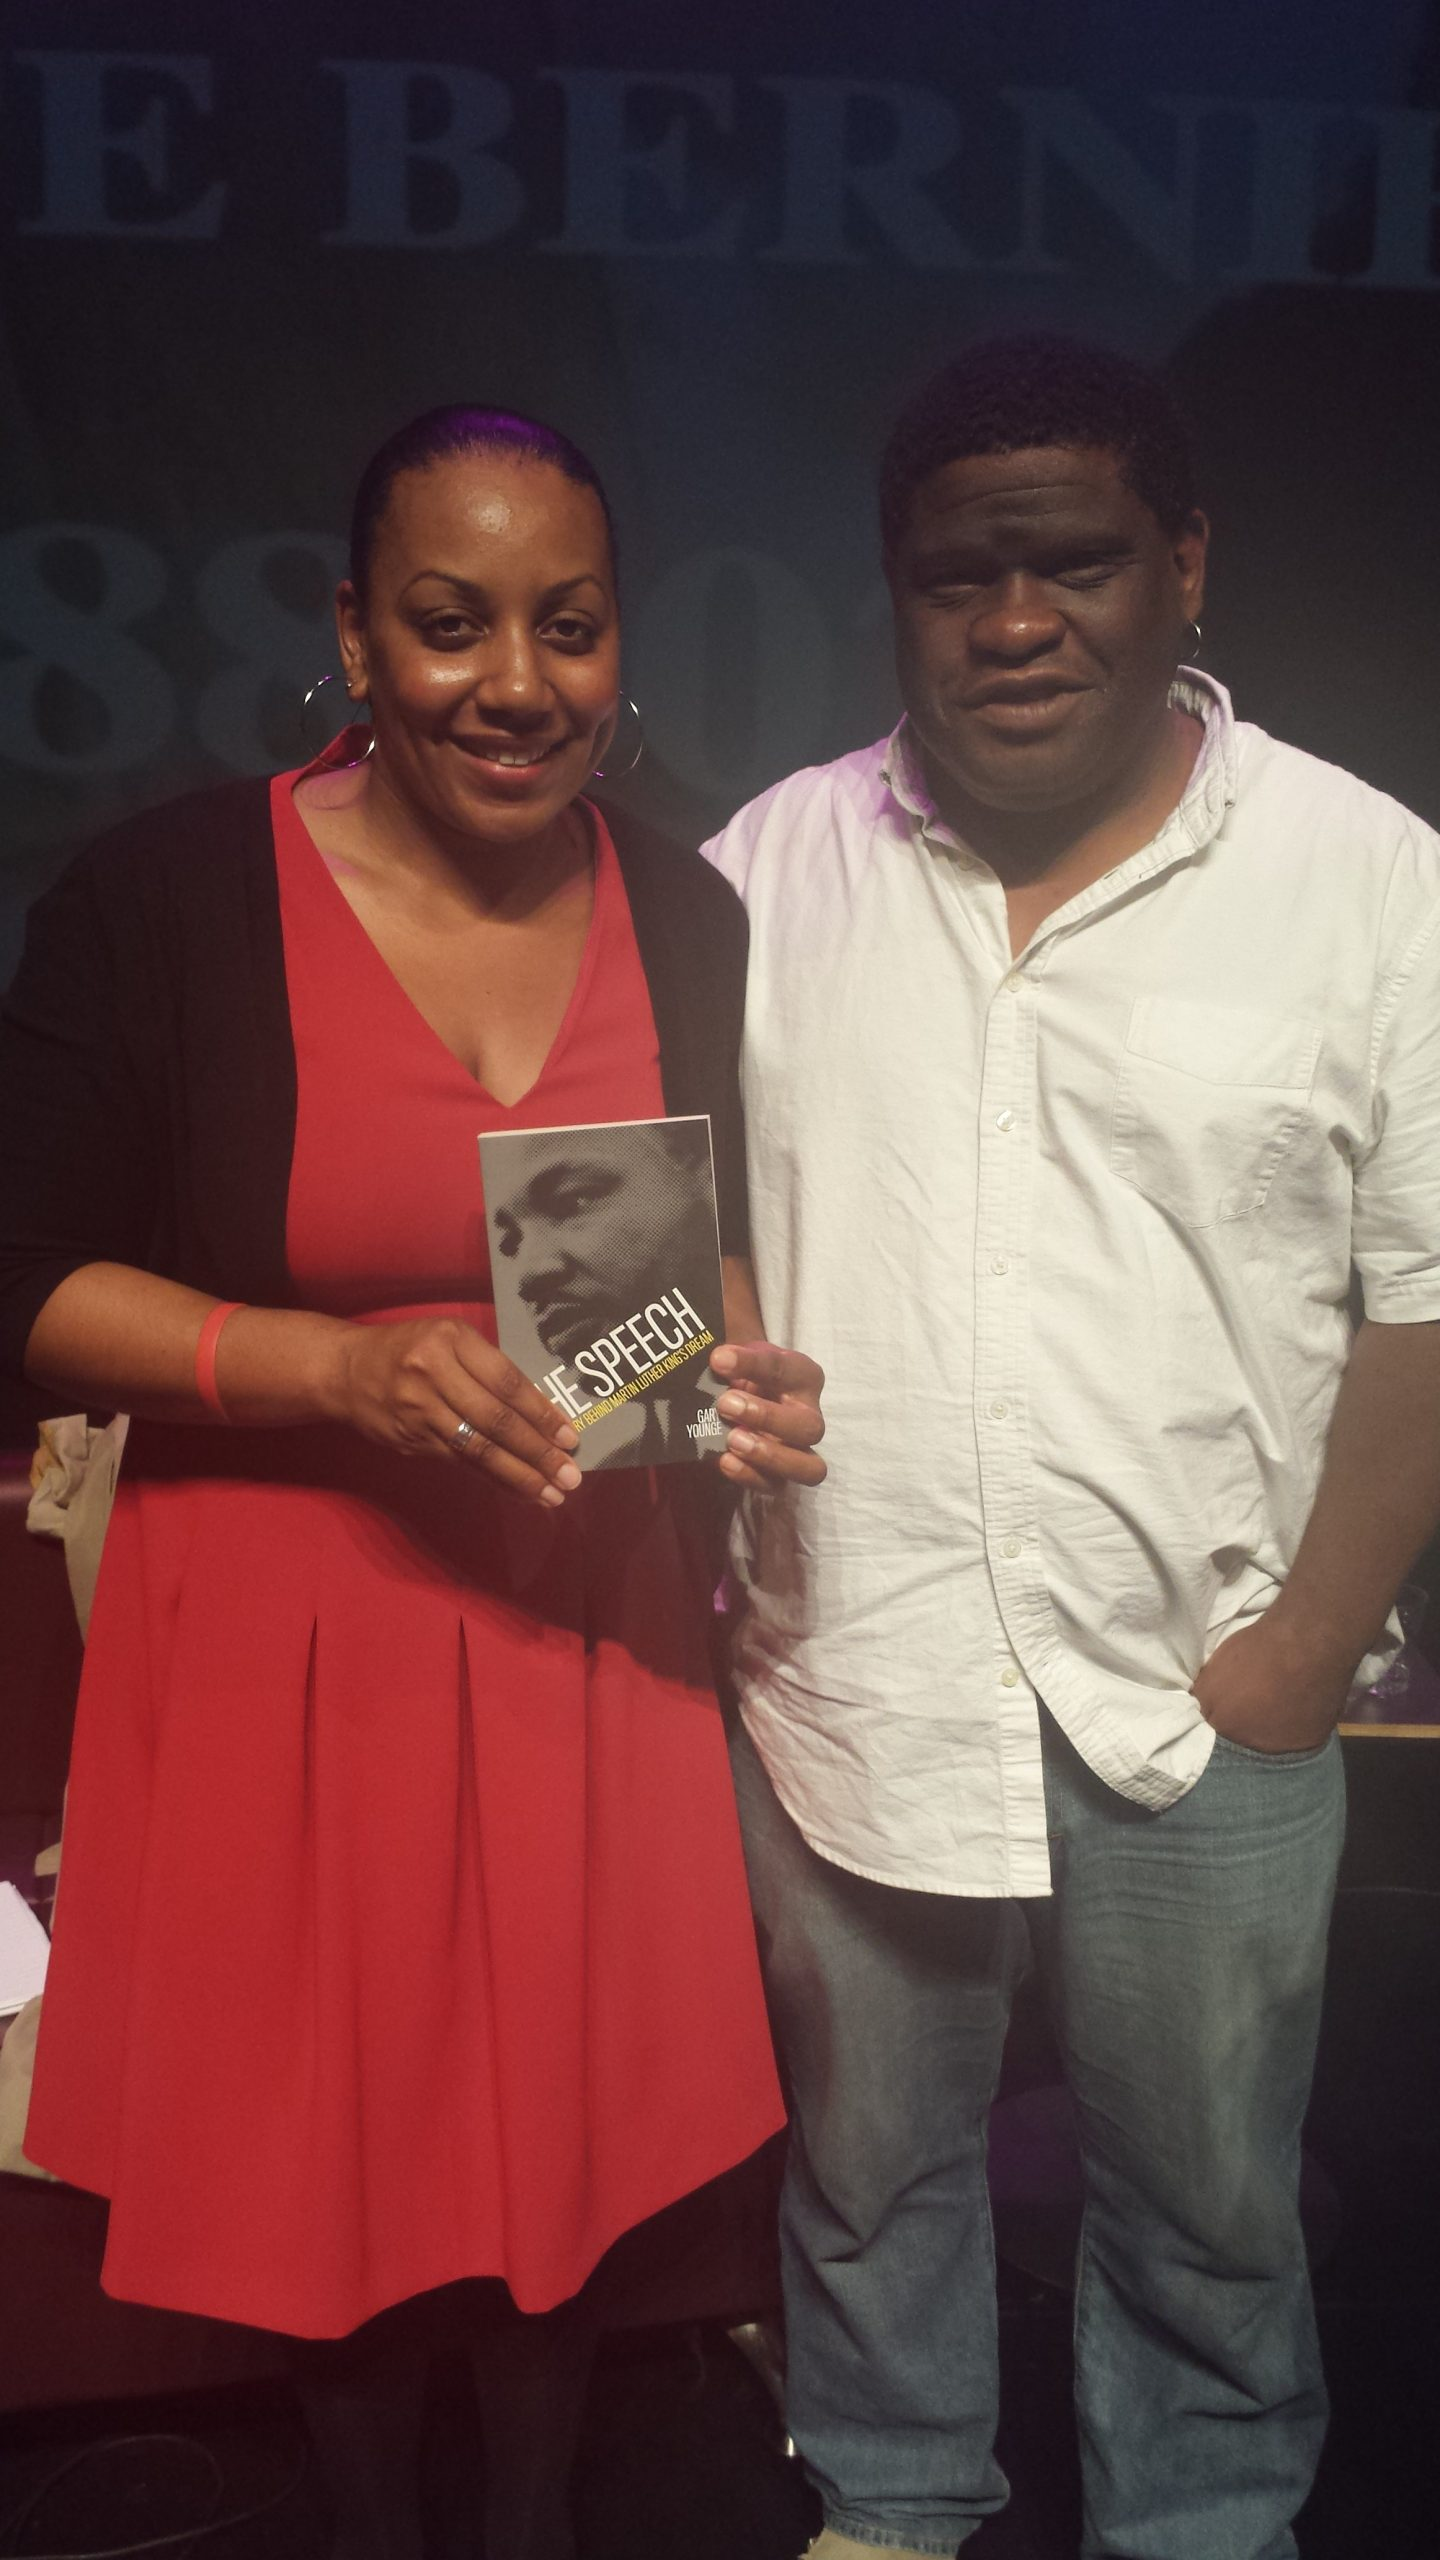 Gary Younge, with the JusticeGap's Miranda Grell. Miranda was on the panel discussion